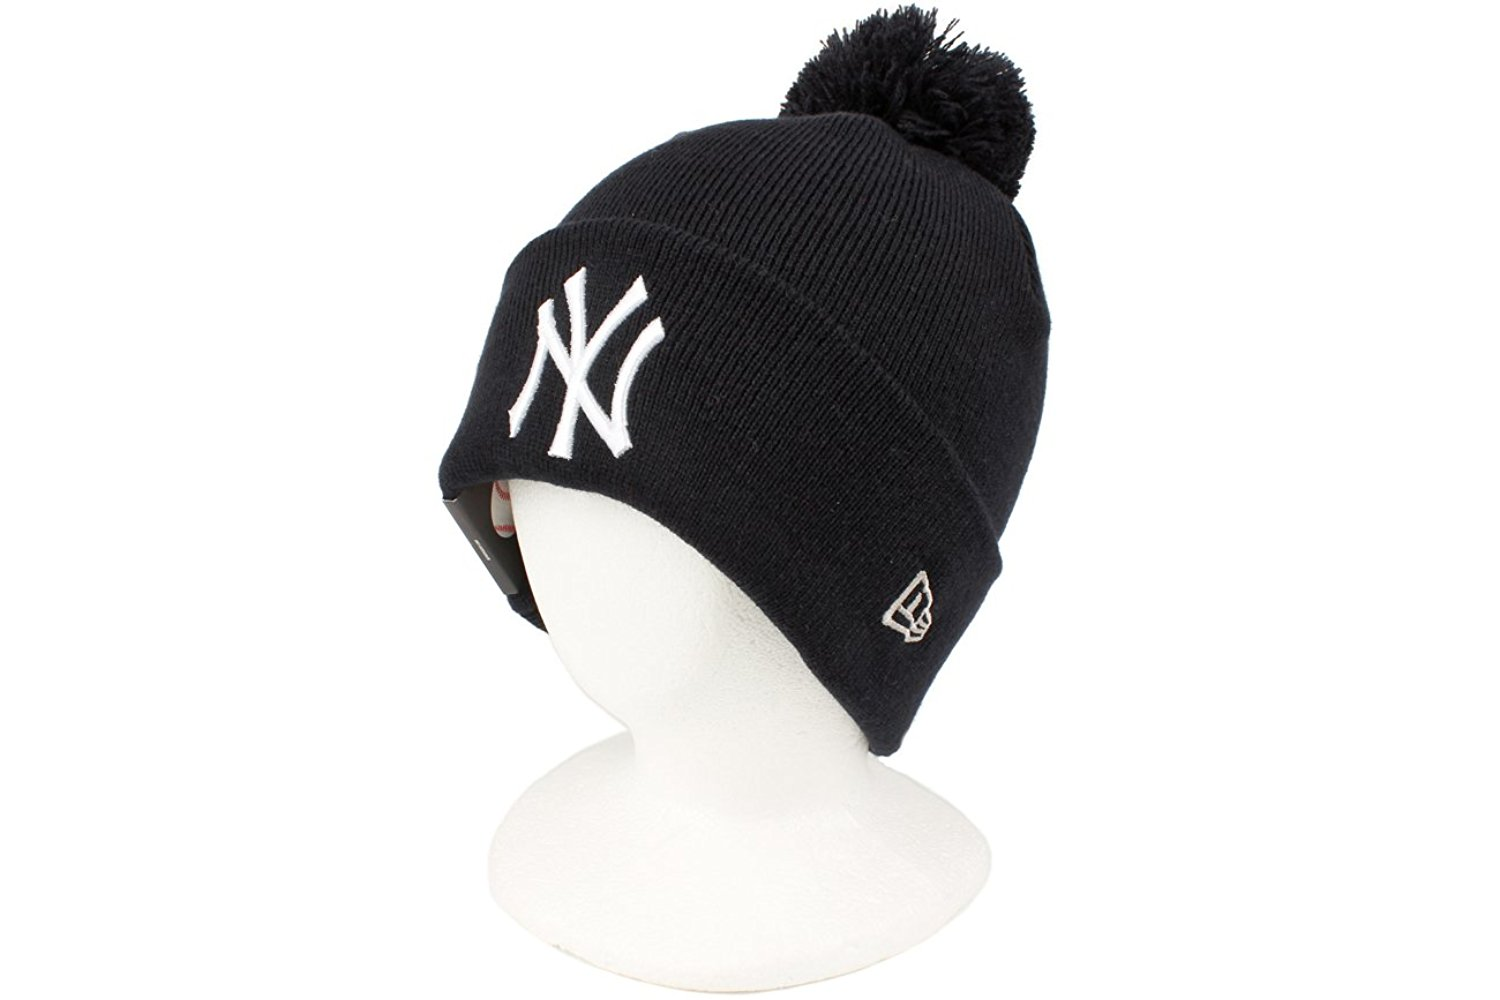 Buy New Era Pomz The Team Knit Hat in Cheap Price on Alibaba.com 830f23372a1c